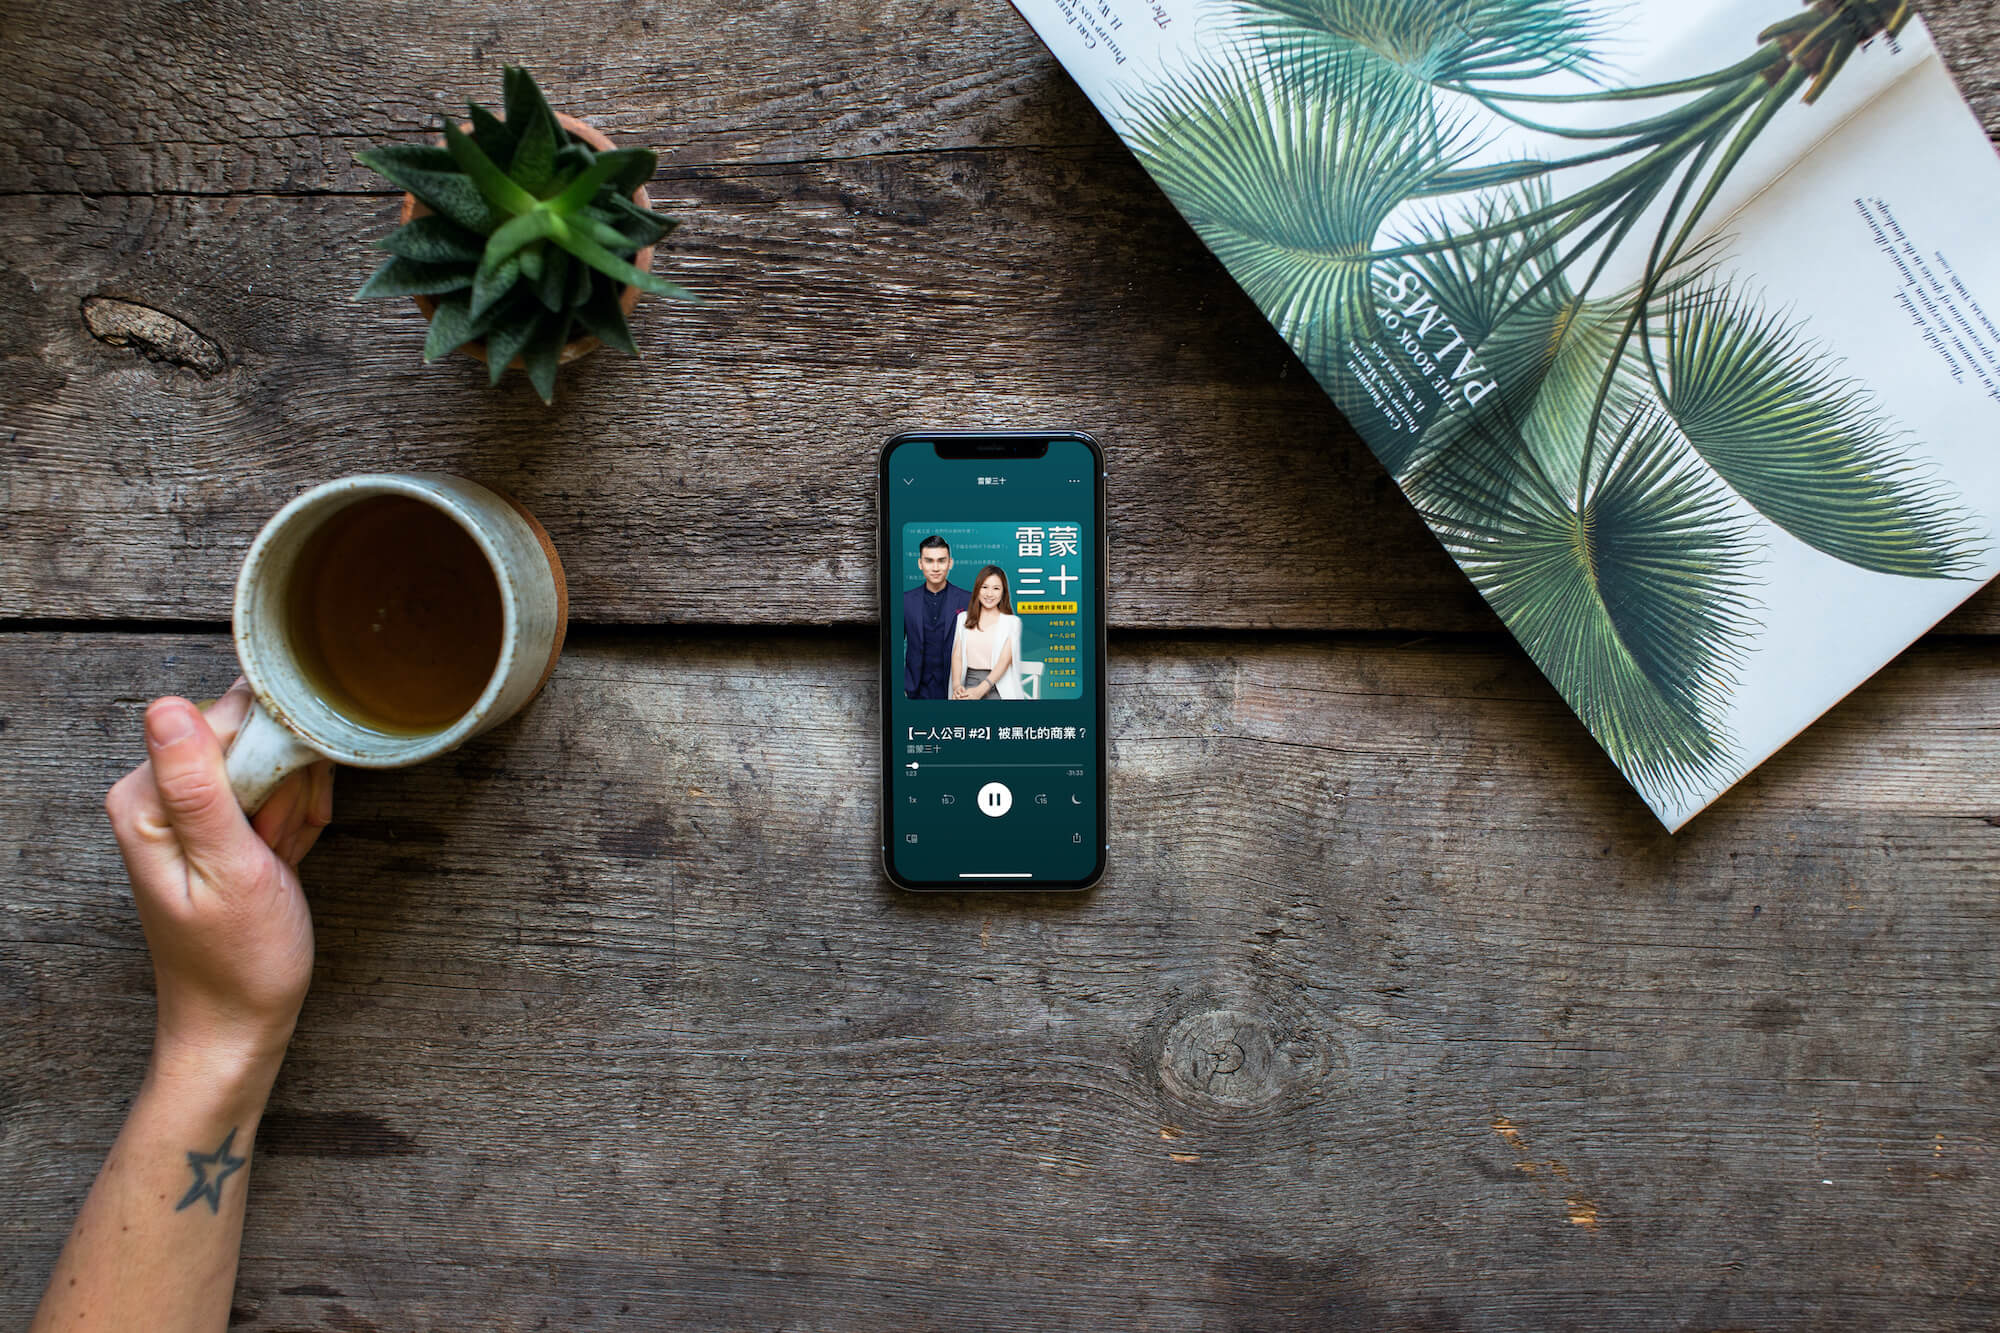 drinking tea over the iphone xs mockup and plants 3